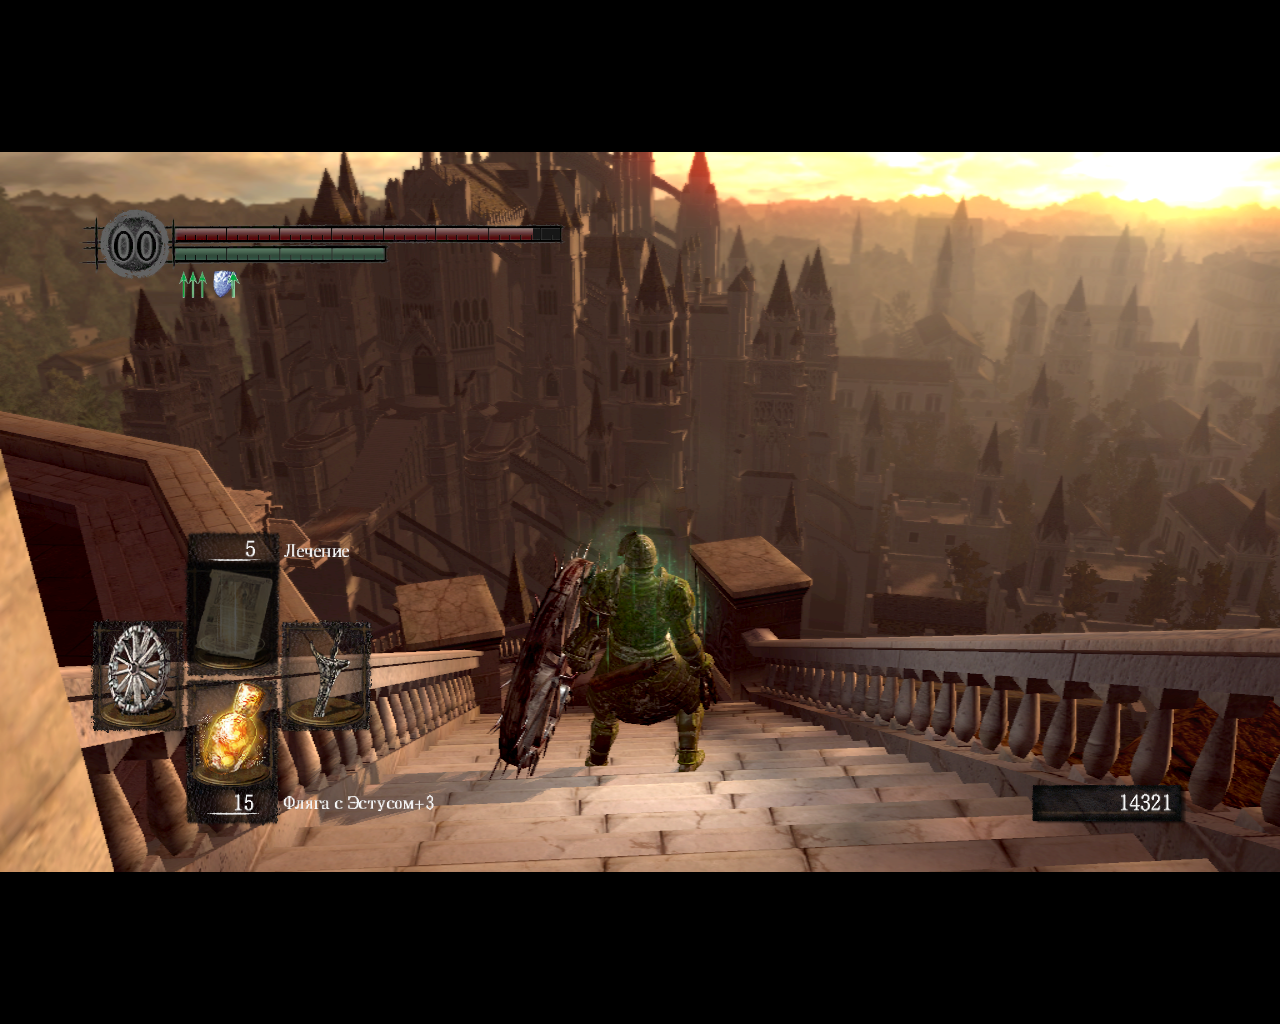 Dark Souls: Prepare to Die Edition Windows The magnificent Anor Londo